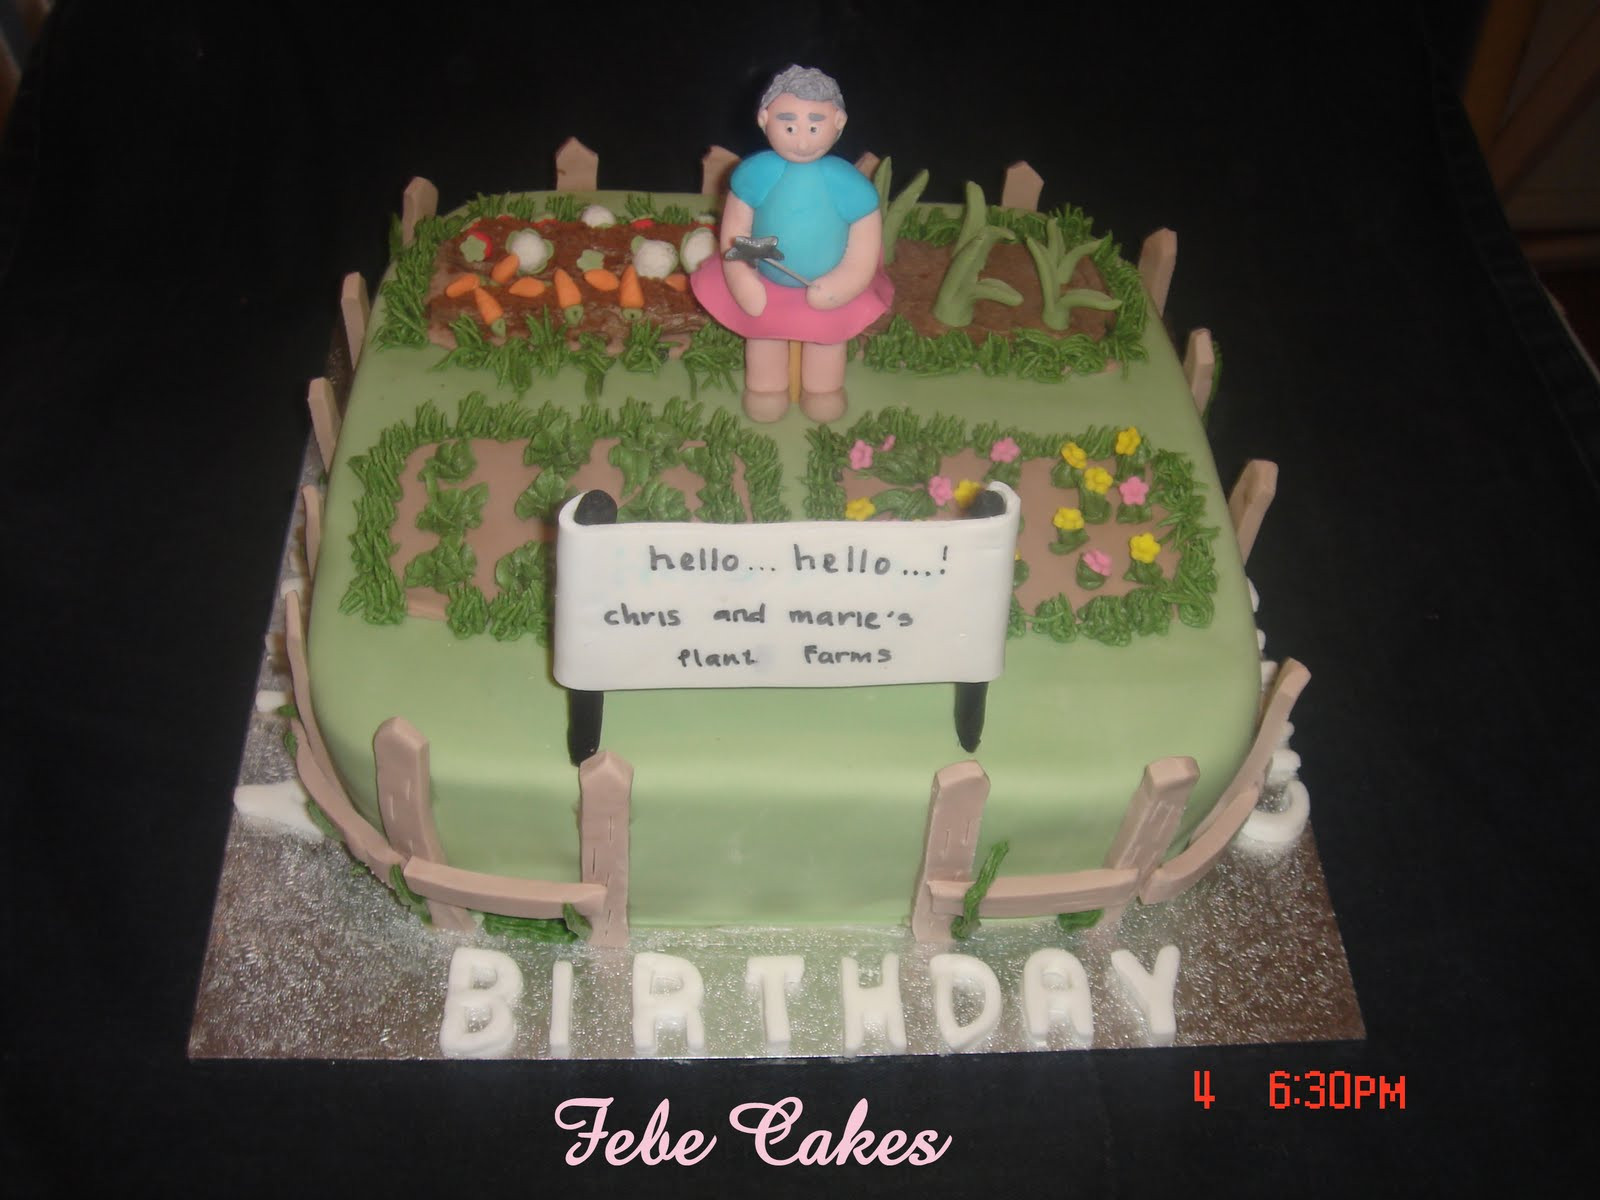 Best ideas about Happy Birthday Chris Cake . Save or Pin Febe Cakes Chris and Marie s Plant farms cake Now.